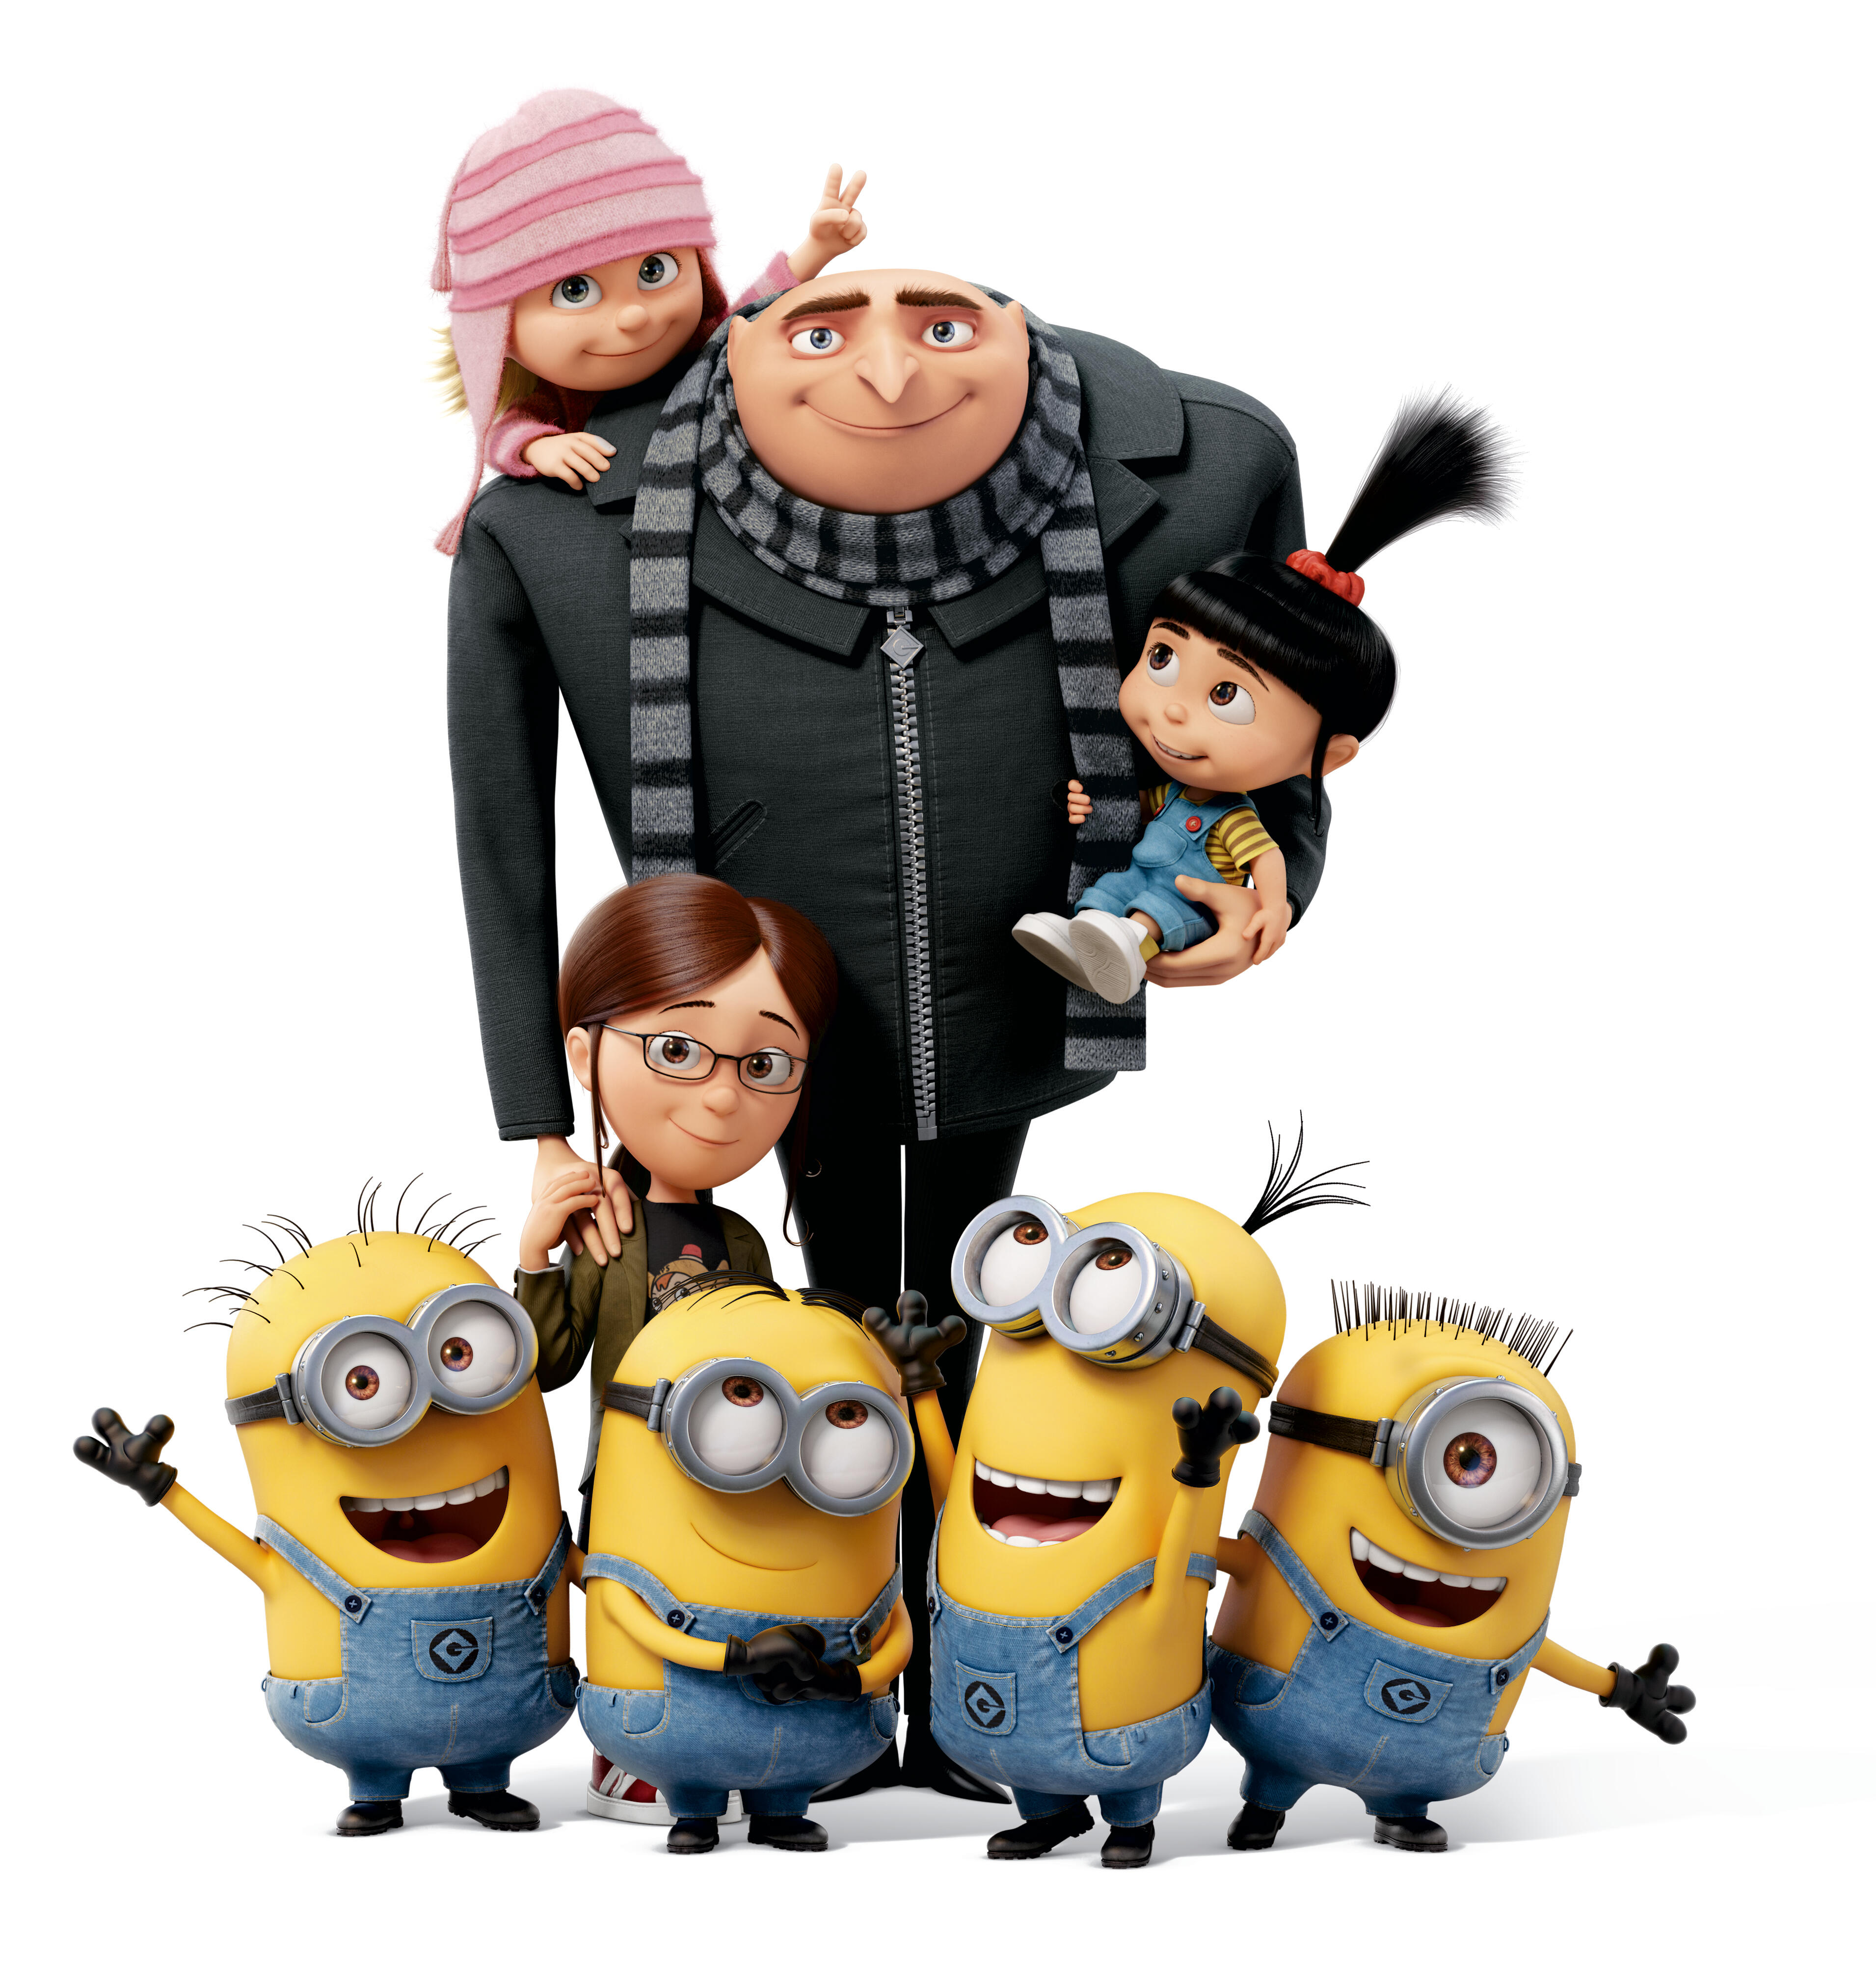 Despicable me 2 online dating scene in chicago 5